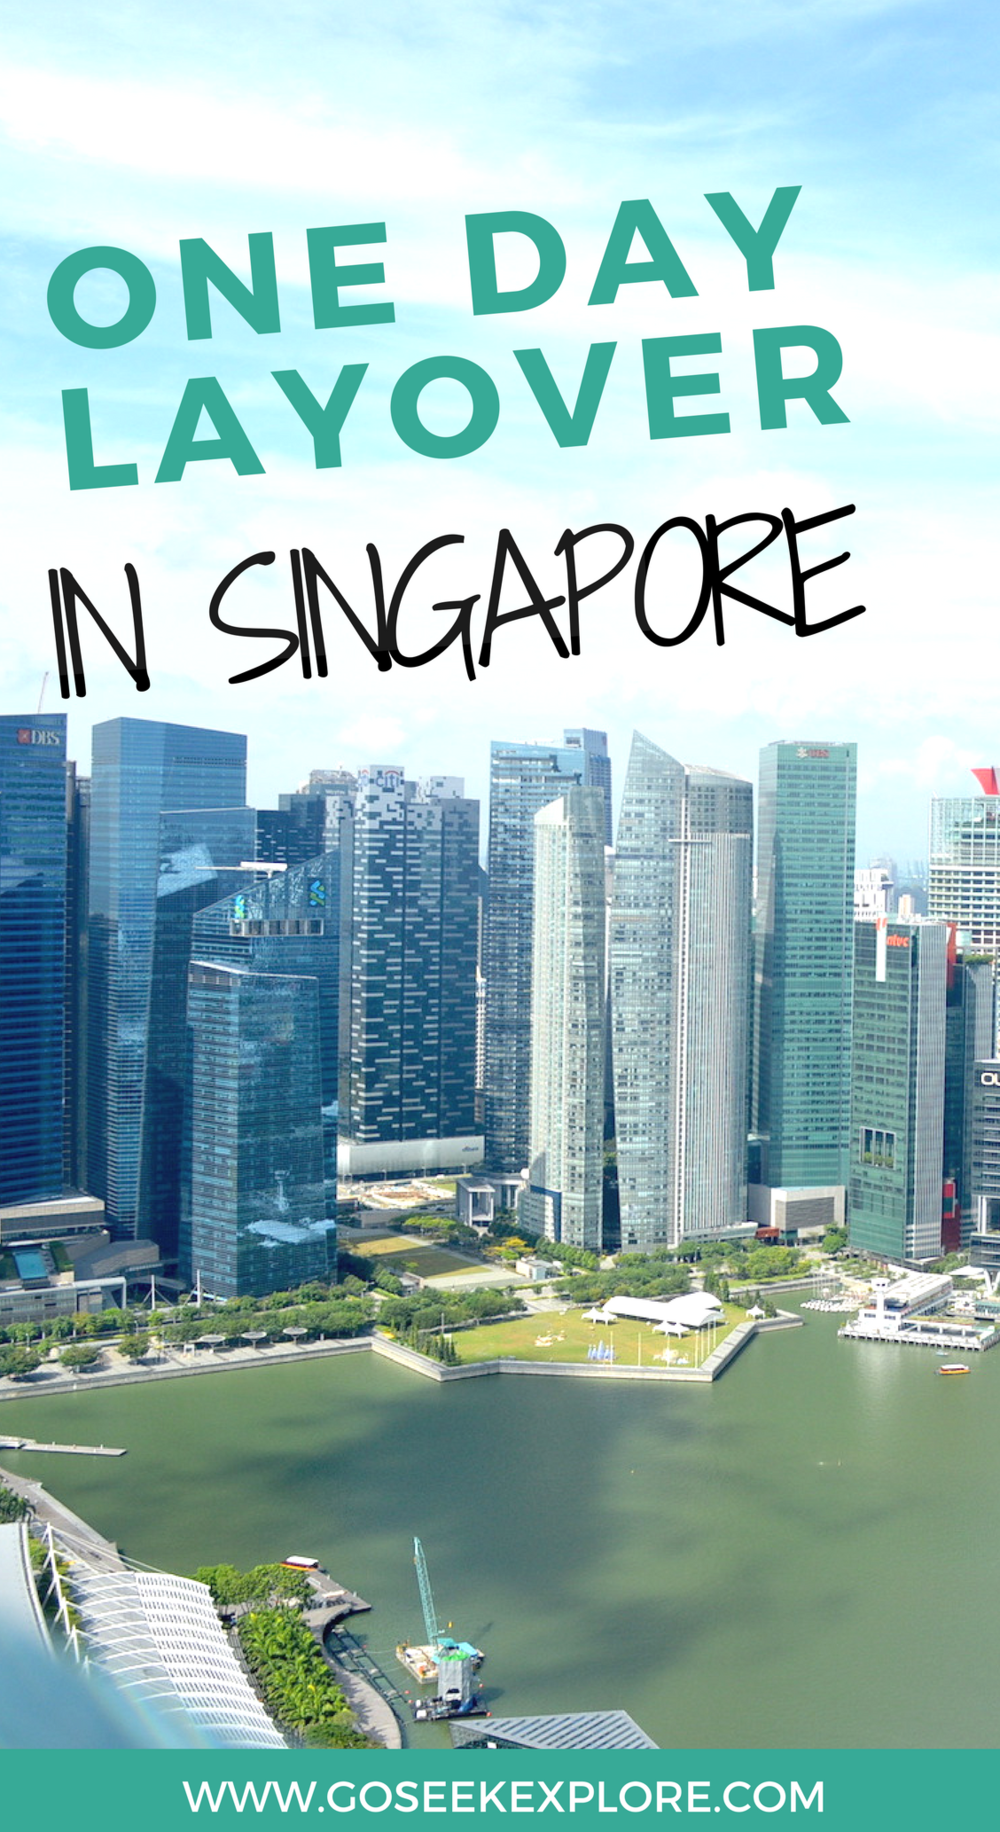 Want to see Singapore during your layover? Make sure to check these things to do on a Singapore layover - this post goes over what to do on a one day layover in Singapore